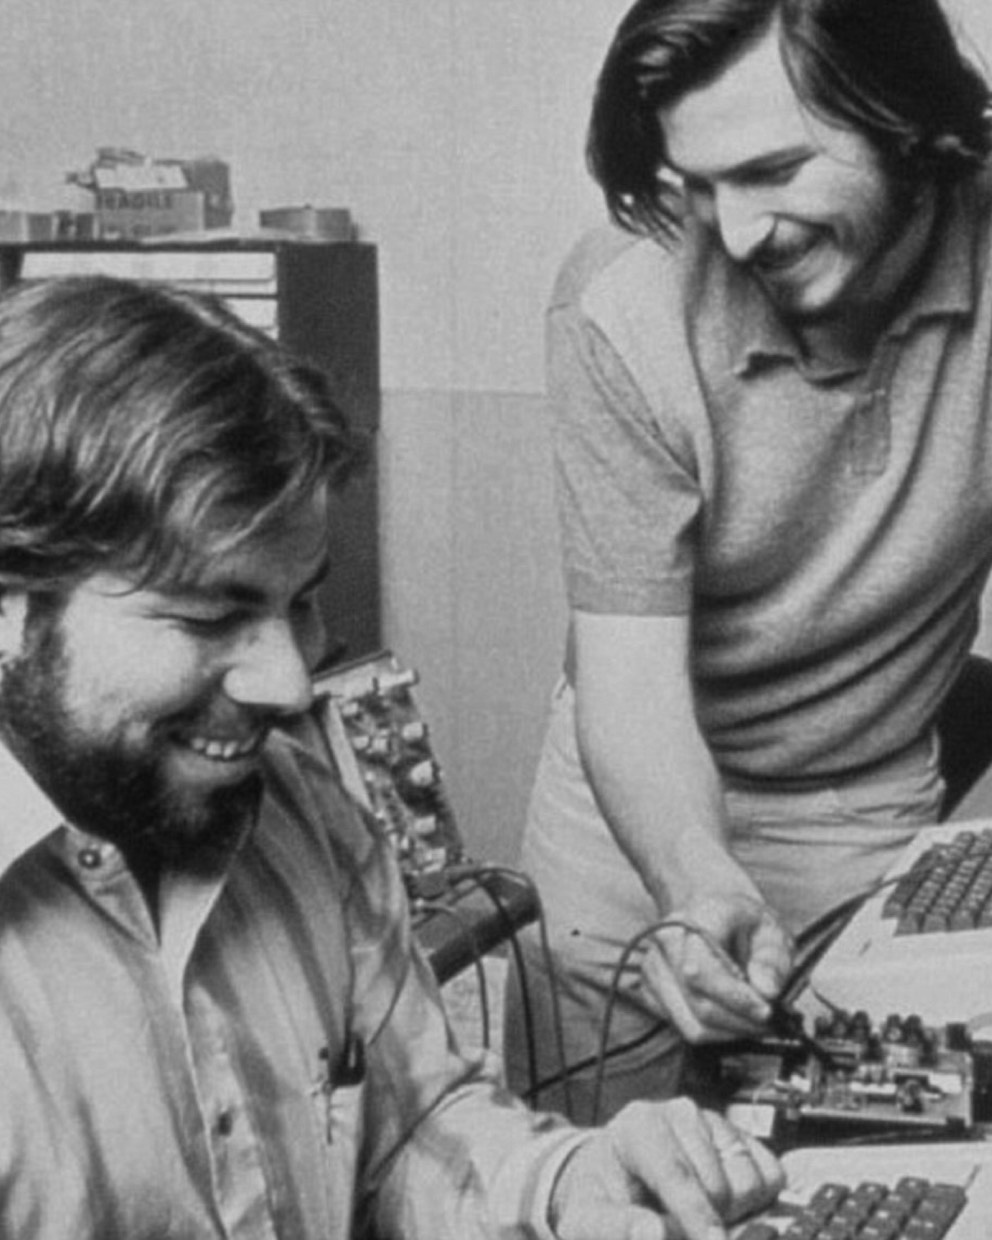 Steve Wozniak and Steve Jobs